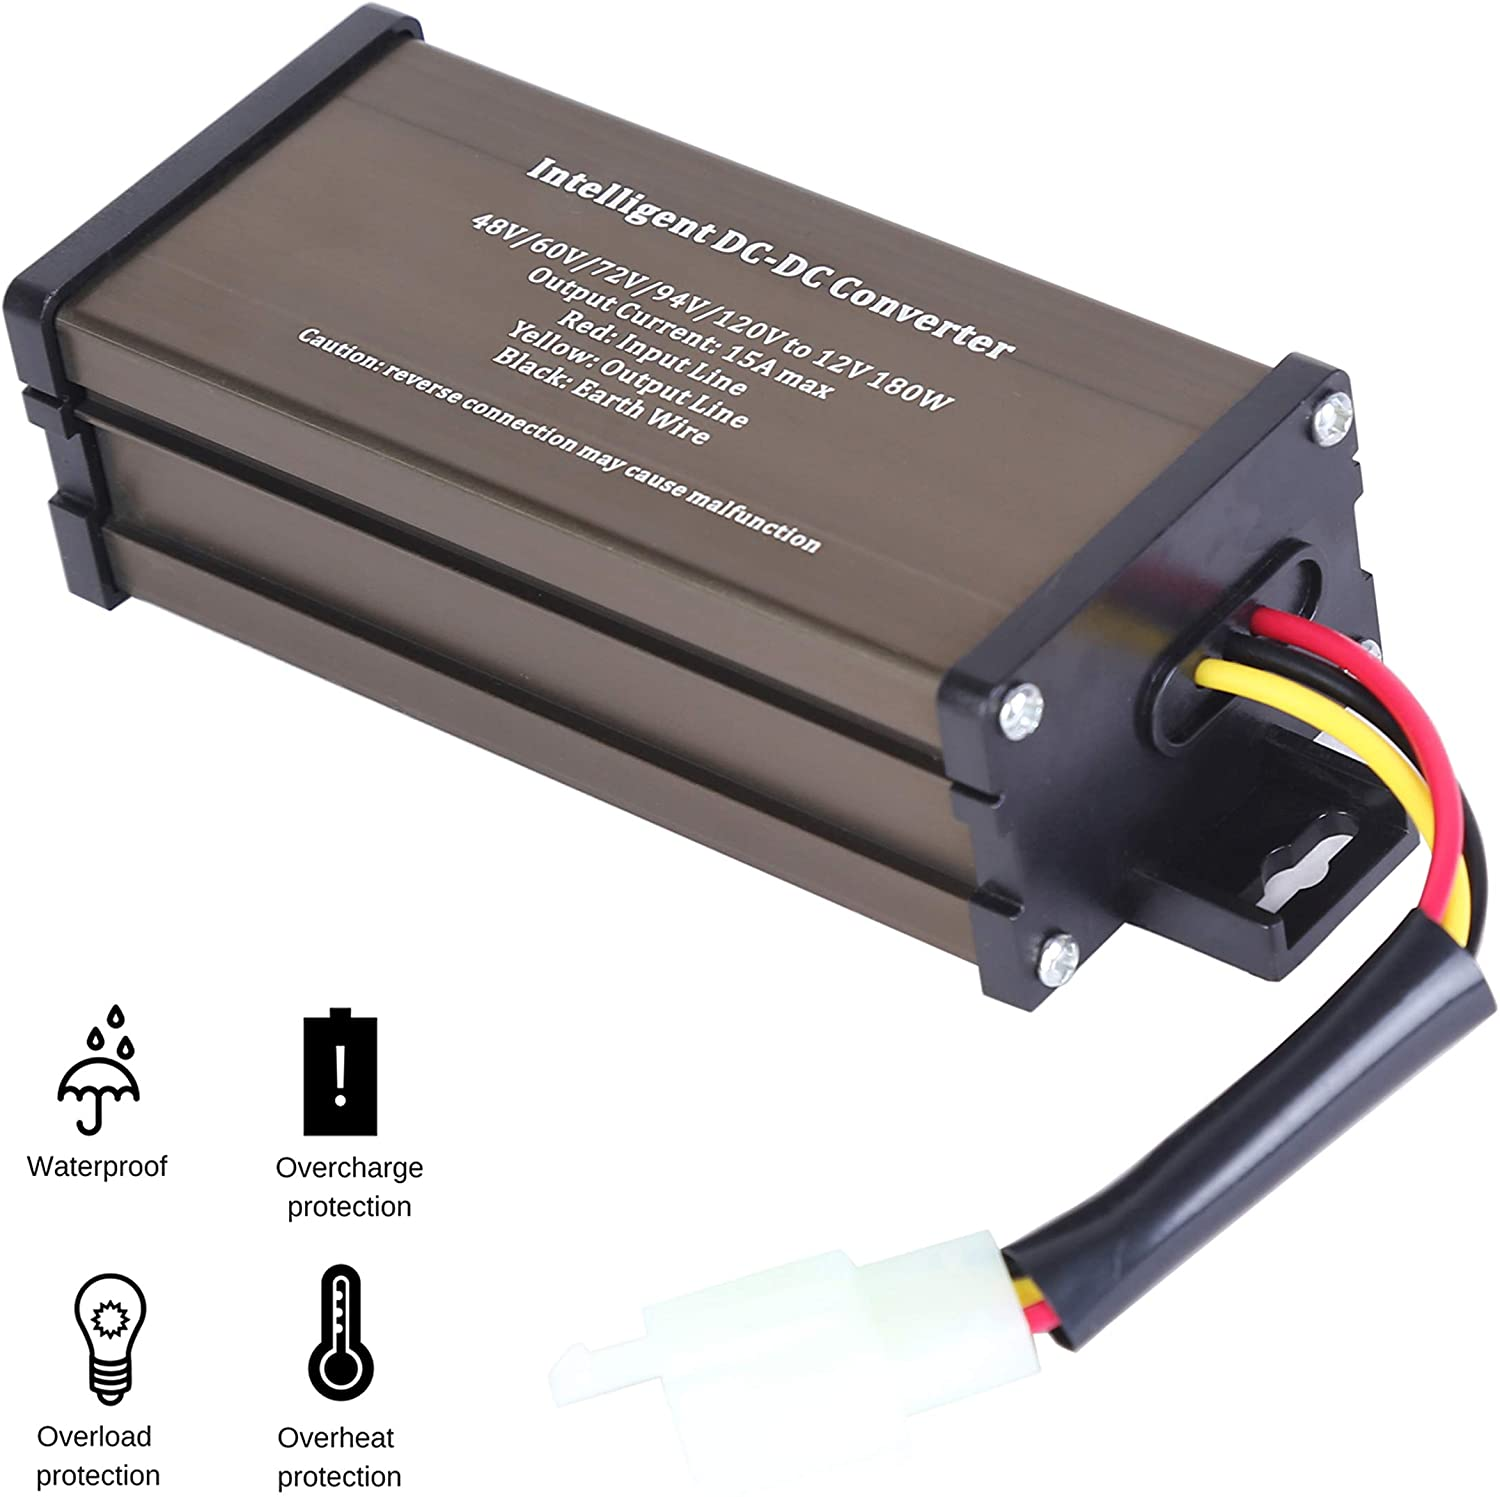 Pro Chaser DC-DC 120V 108V 96V 84V 72V 60V 48V Volt Voltage to 12V Step Down Voltage Reducer Regulator 180W 15A for Scooters & Bicycles Golf cart (15A 180W)